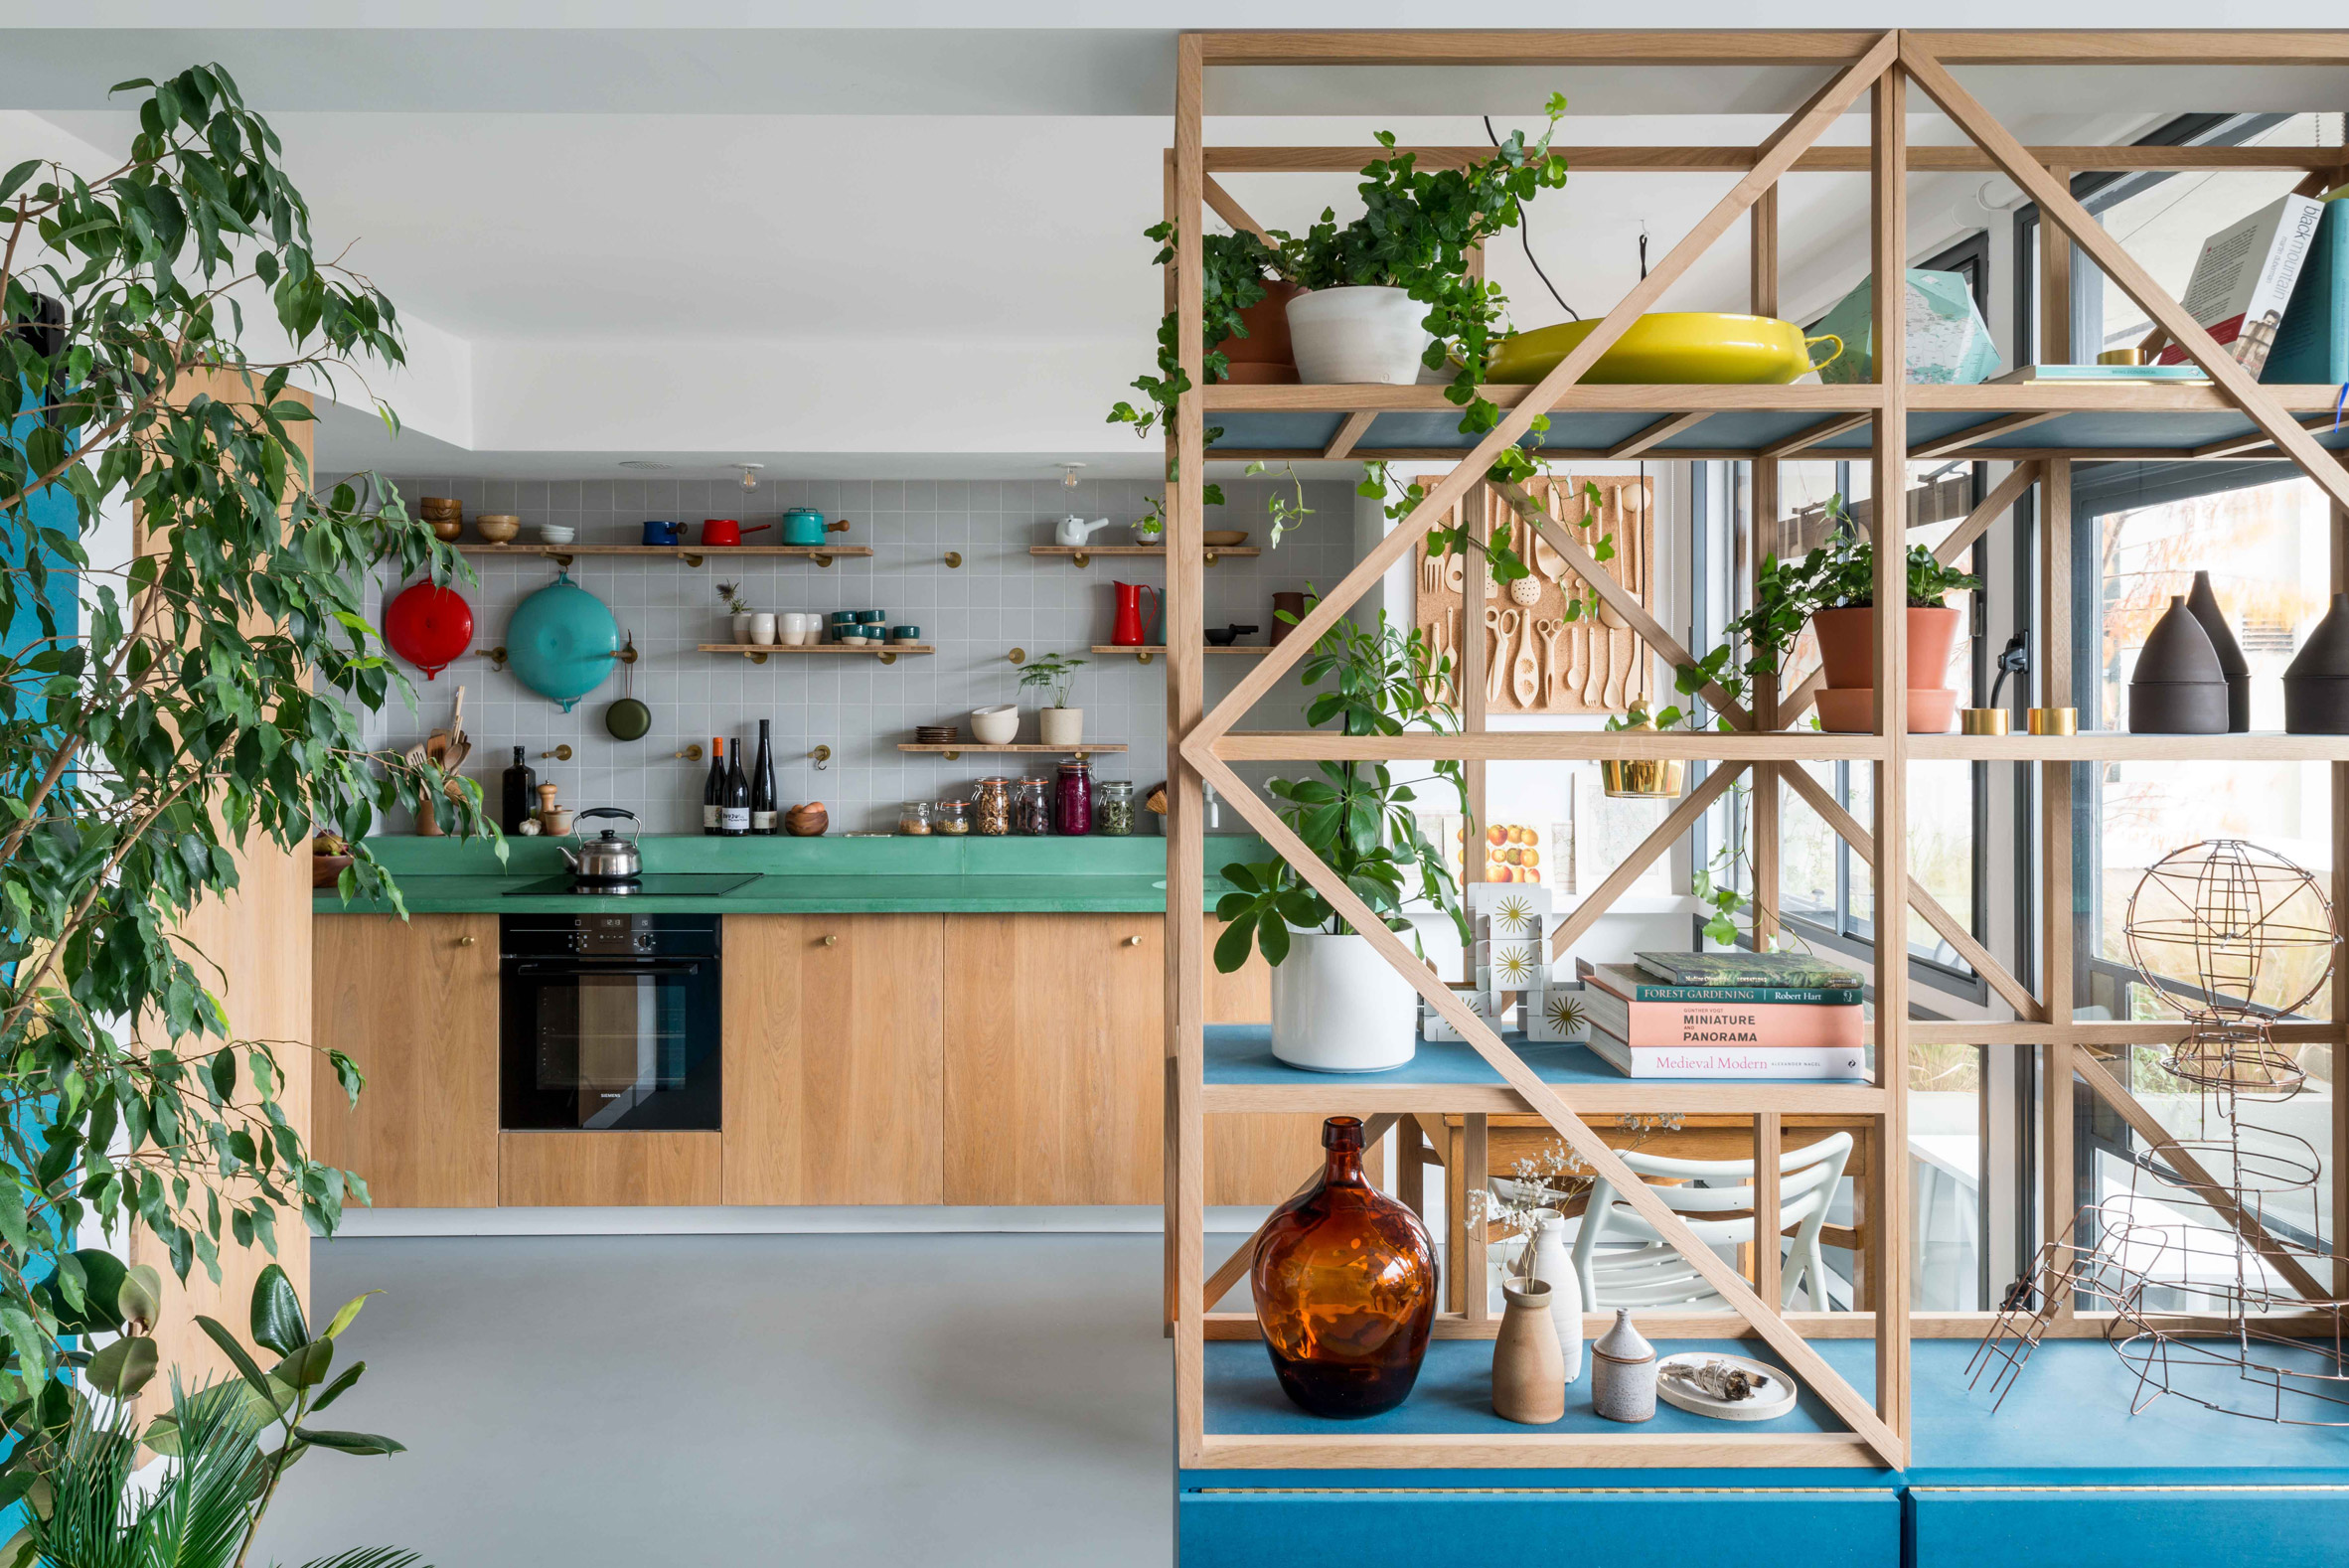 Kitchen of architect Ben Allen's London flat